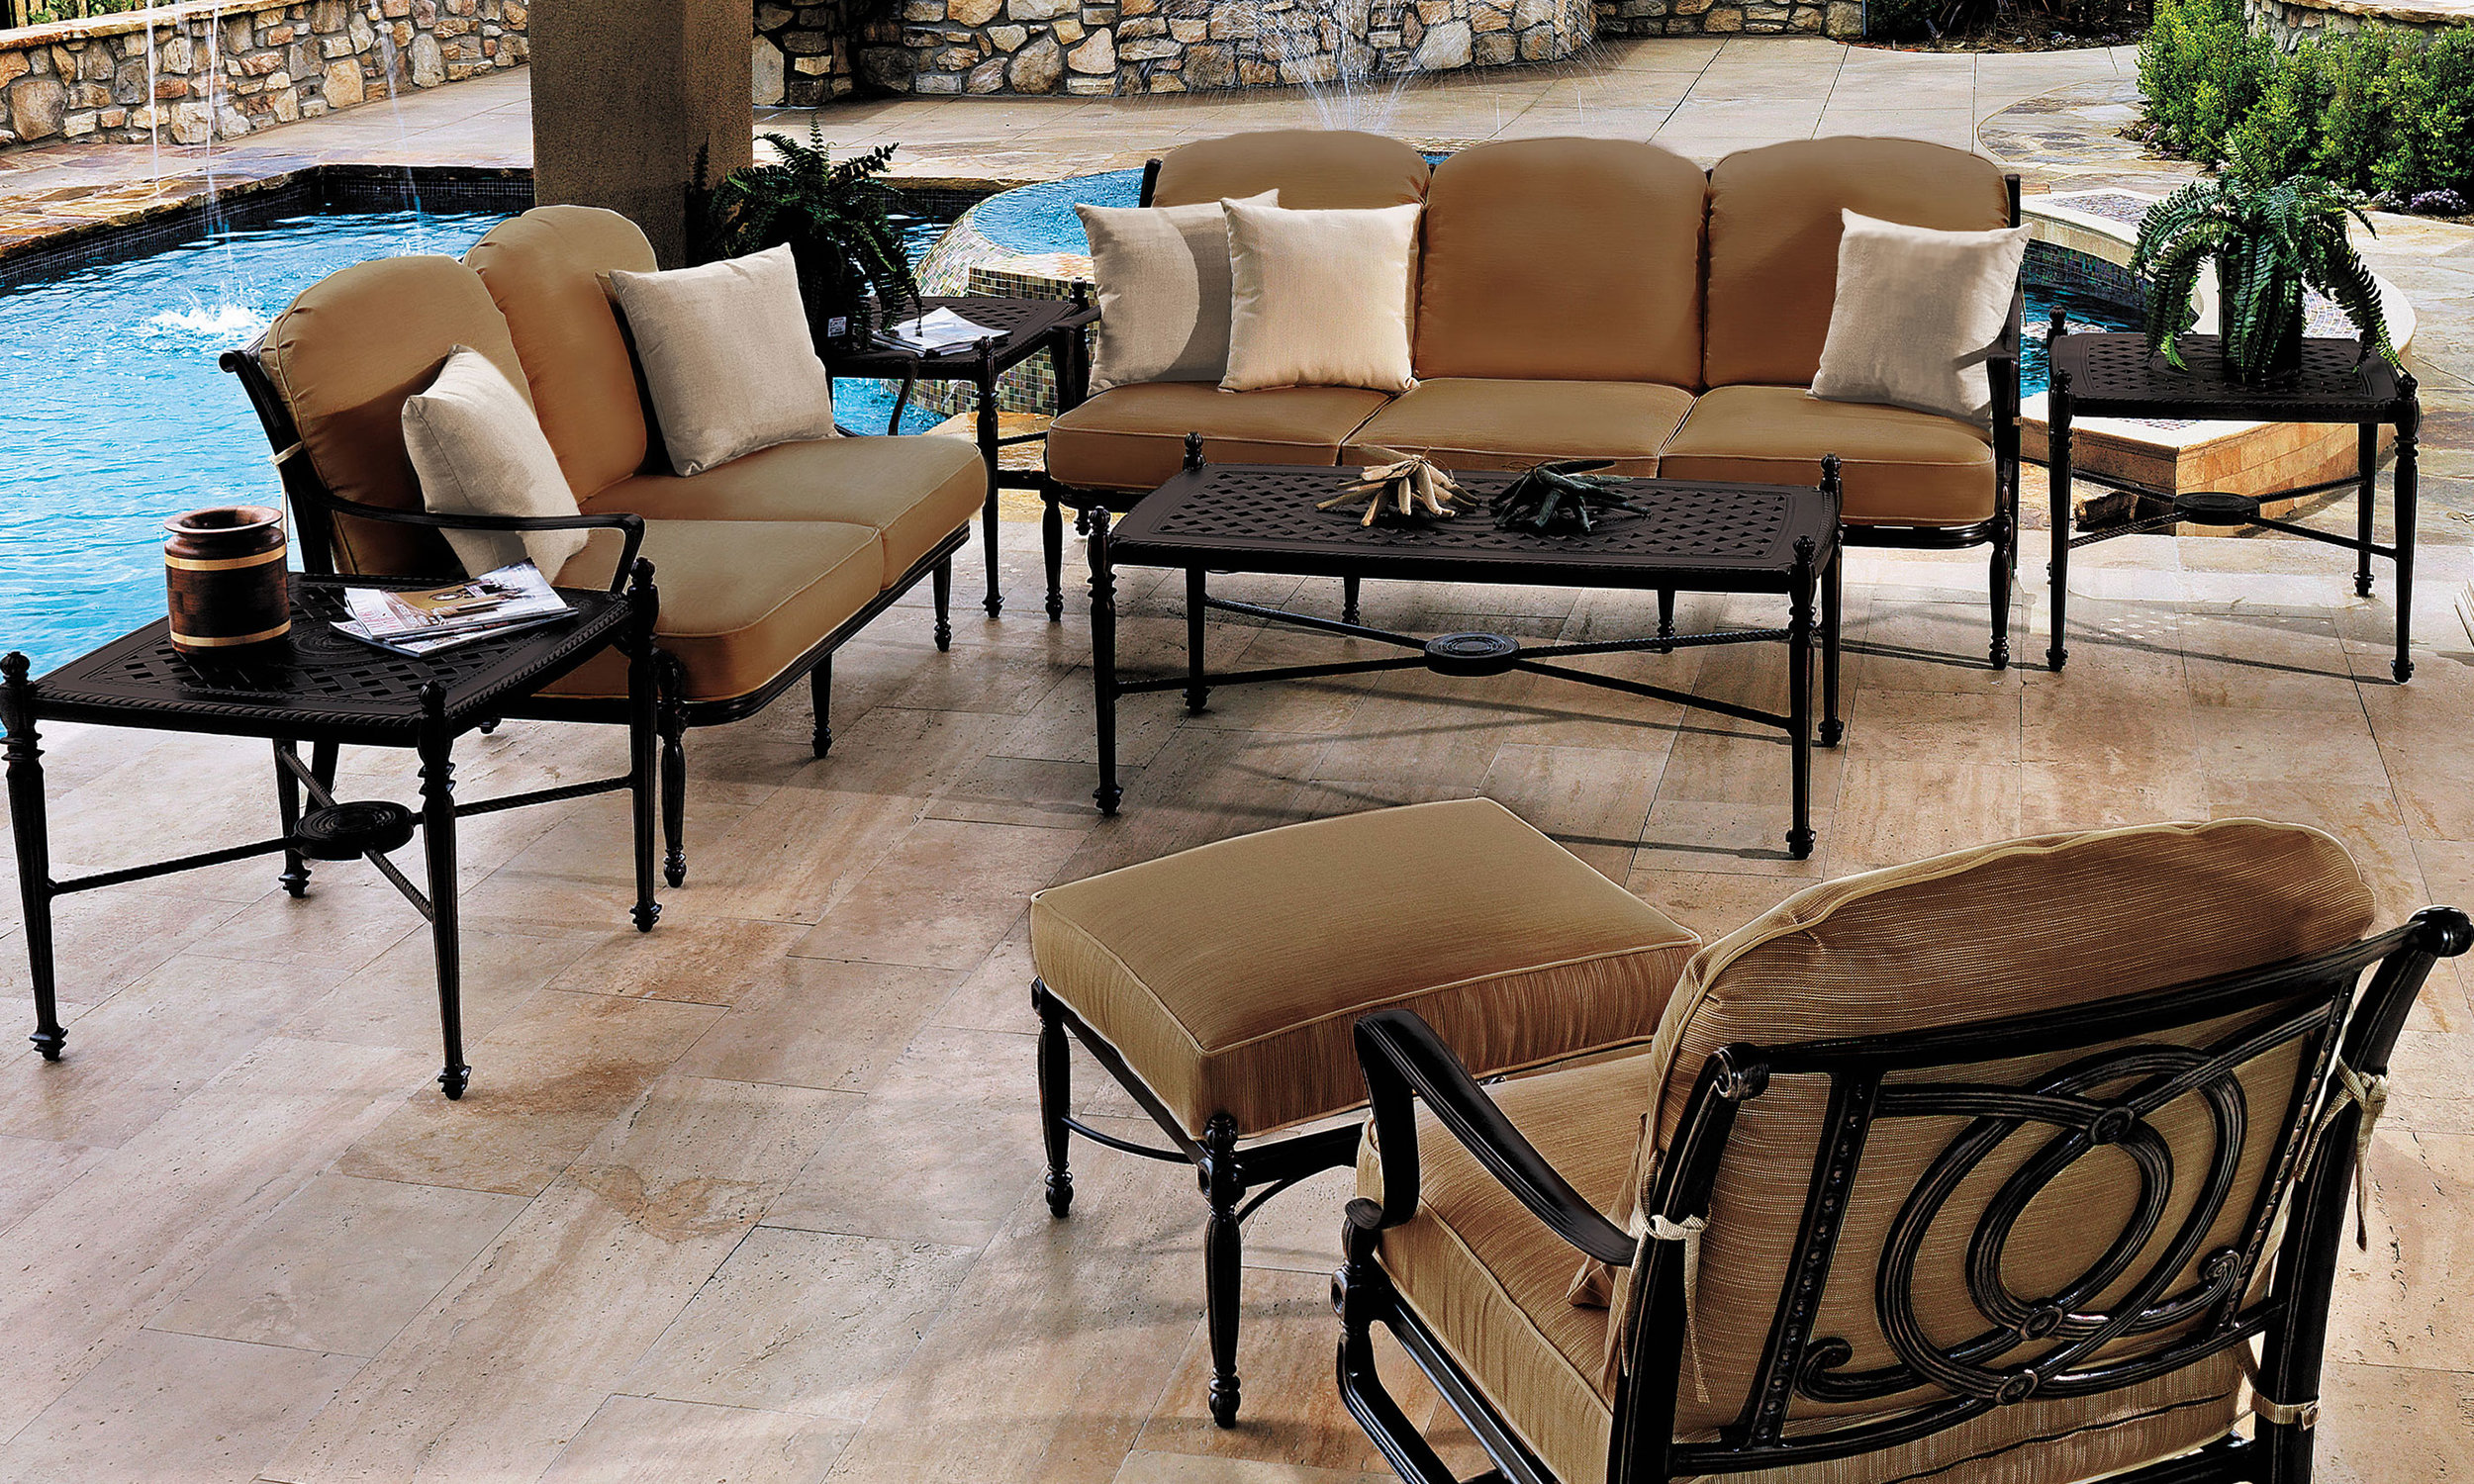 outdoor-furniture_furniture-collections_bel-air_40-l.jpg